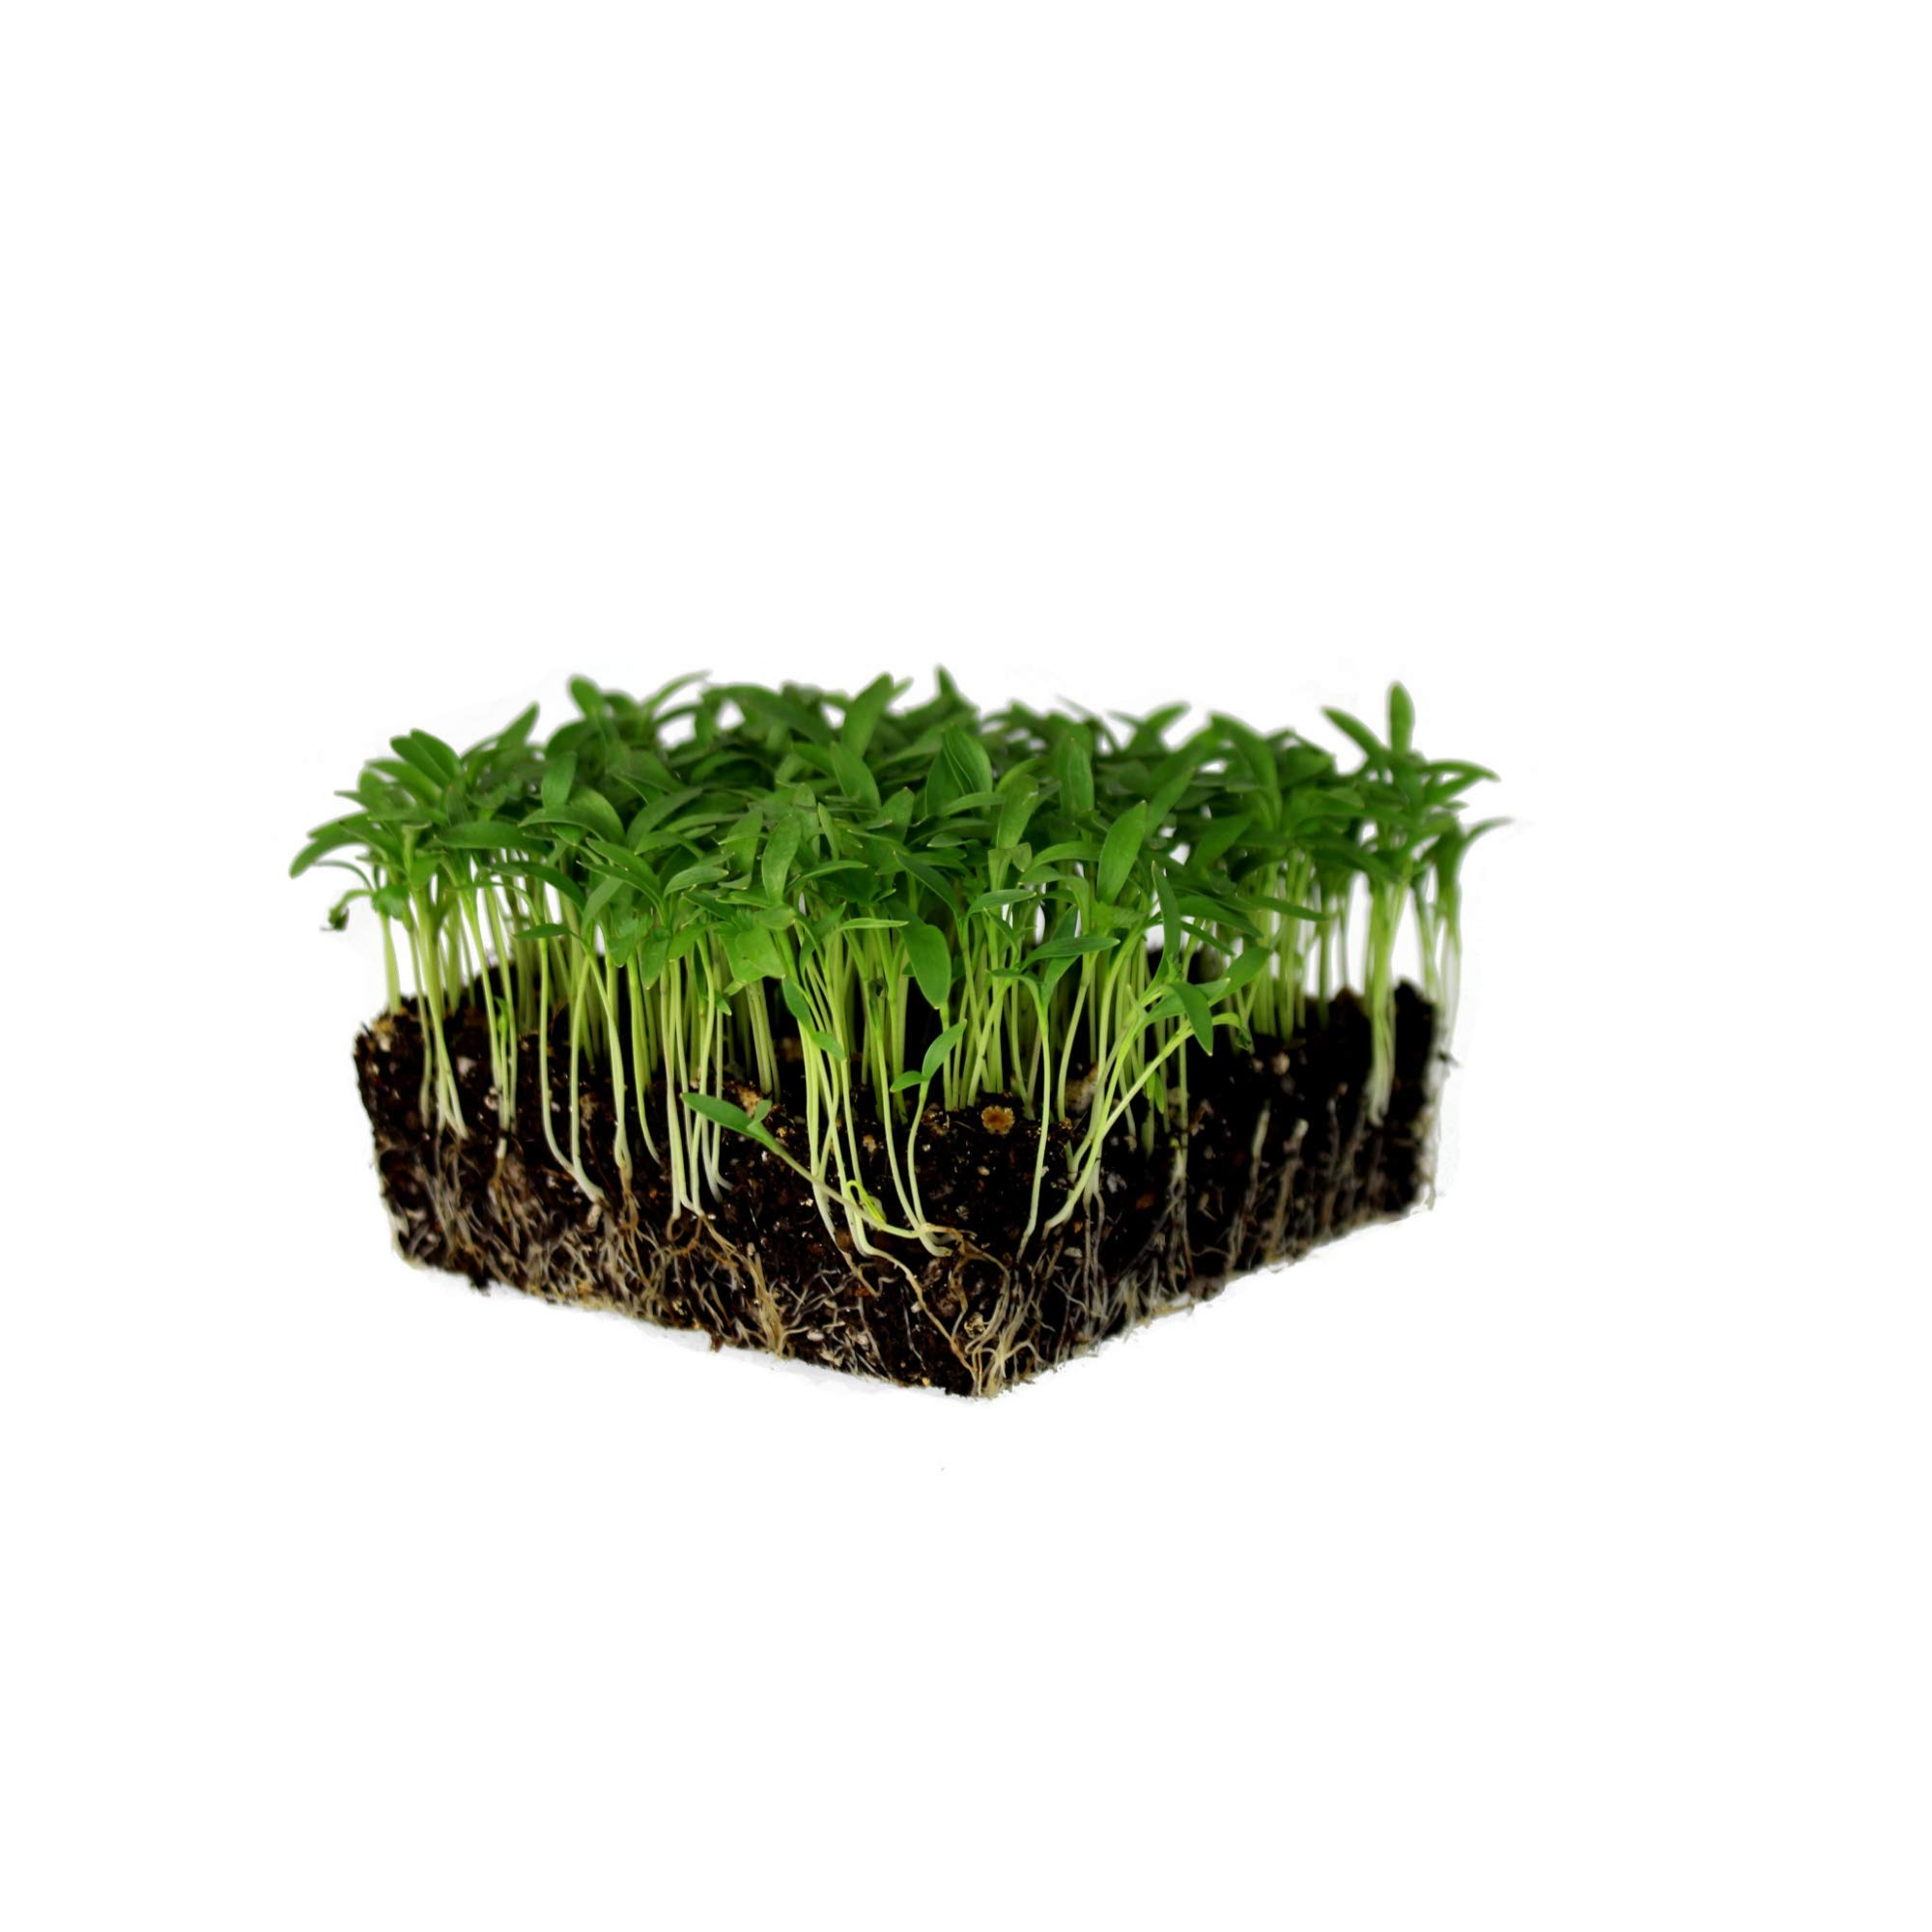 Slow Bolt Cilantro Herb Seeds: 5 Lb - Bulk, Non-GMO Microgreens & Herbal Gardening Seeds by Mountain Valley Seed Company